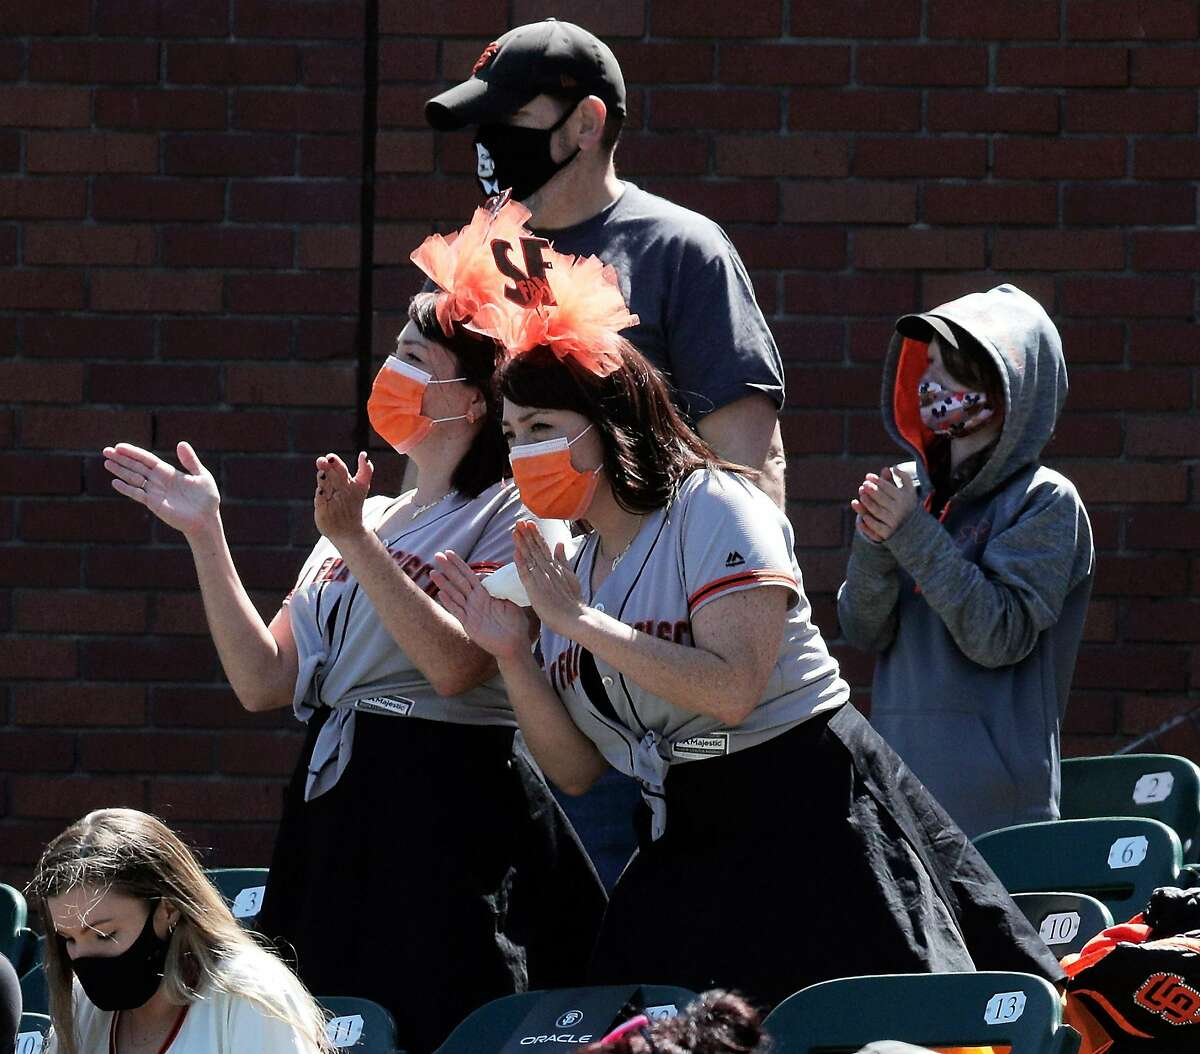 Fans cheer during introductions before the Giants played the Rockies at Oracle Park. Fans did all the things that their cardboard selves couldn't - holler, take selfies and buy caps with holograms on them.